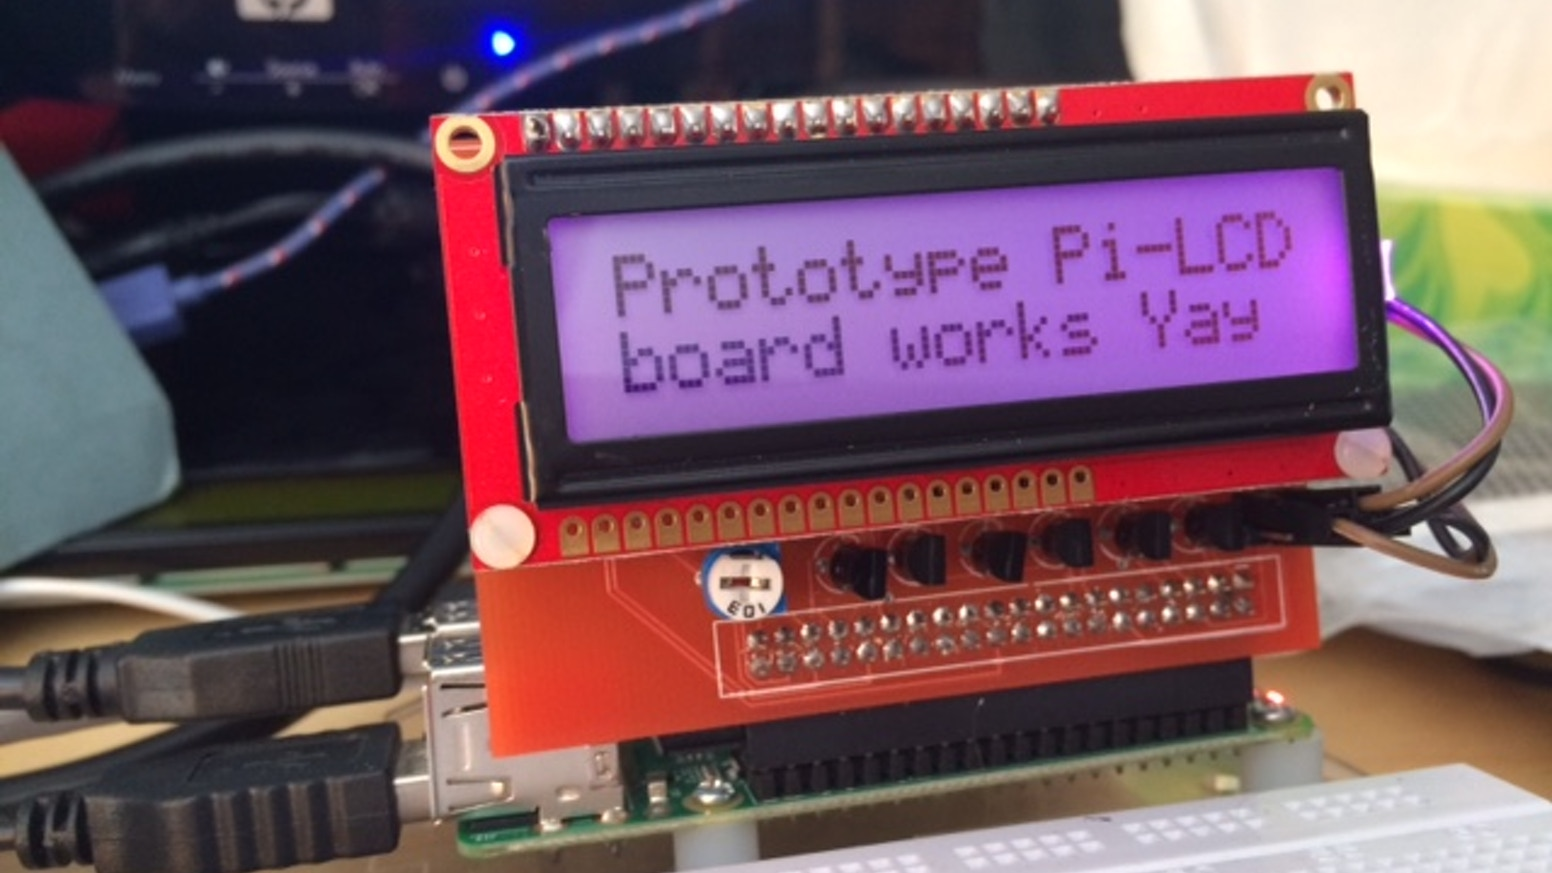 Pi-LCD, a simple LCD interface board for your Raspberry Pi